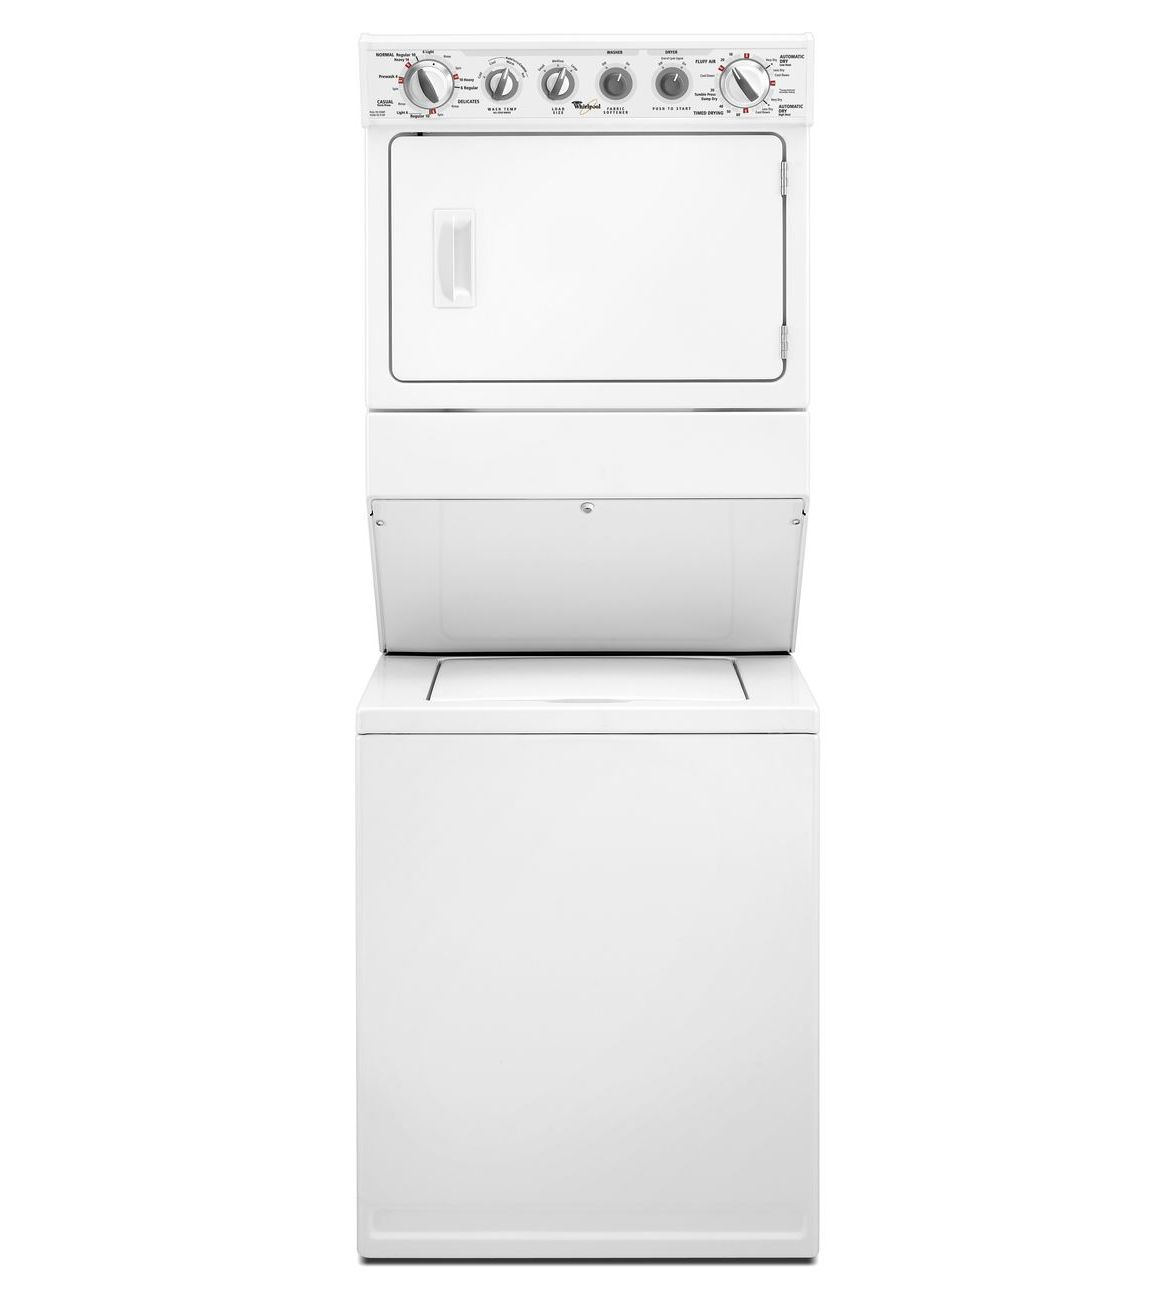 sears dryer wiring diagram with Whirlpool Wet3300xq on Magic Chef Gas Stove Oven Parts Diagram moreover Index further 00001 together with Whirlpool Wet3300xq further Kenmore 500 Washer Parts Diagram.